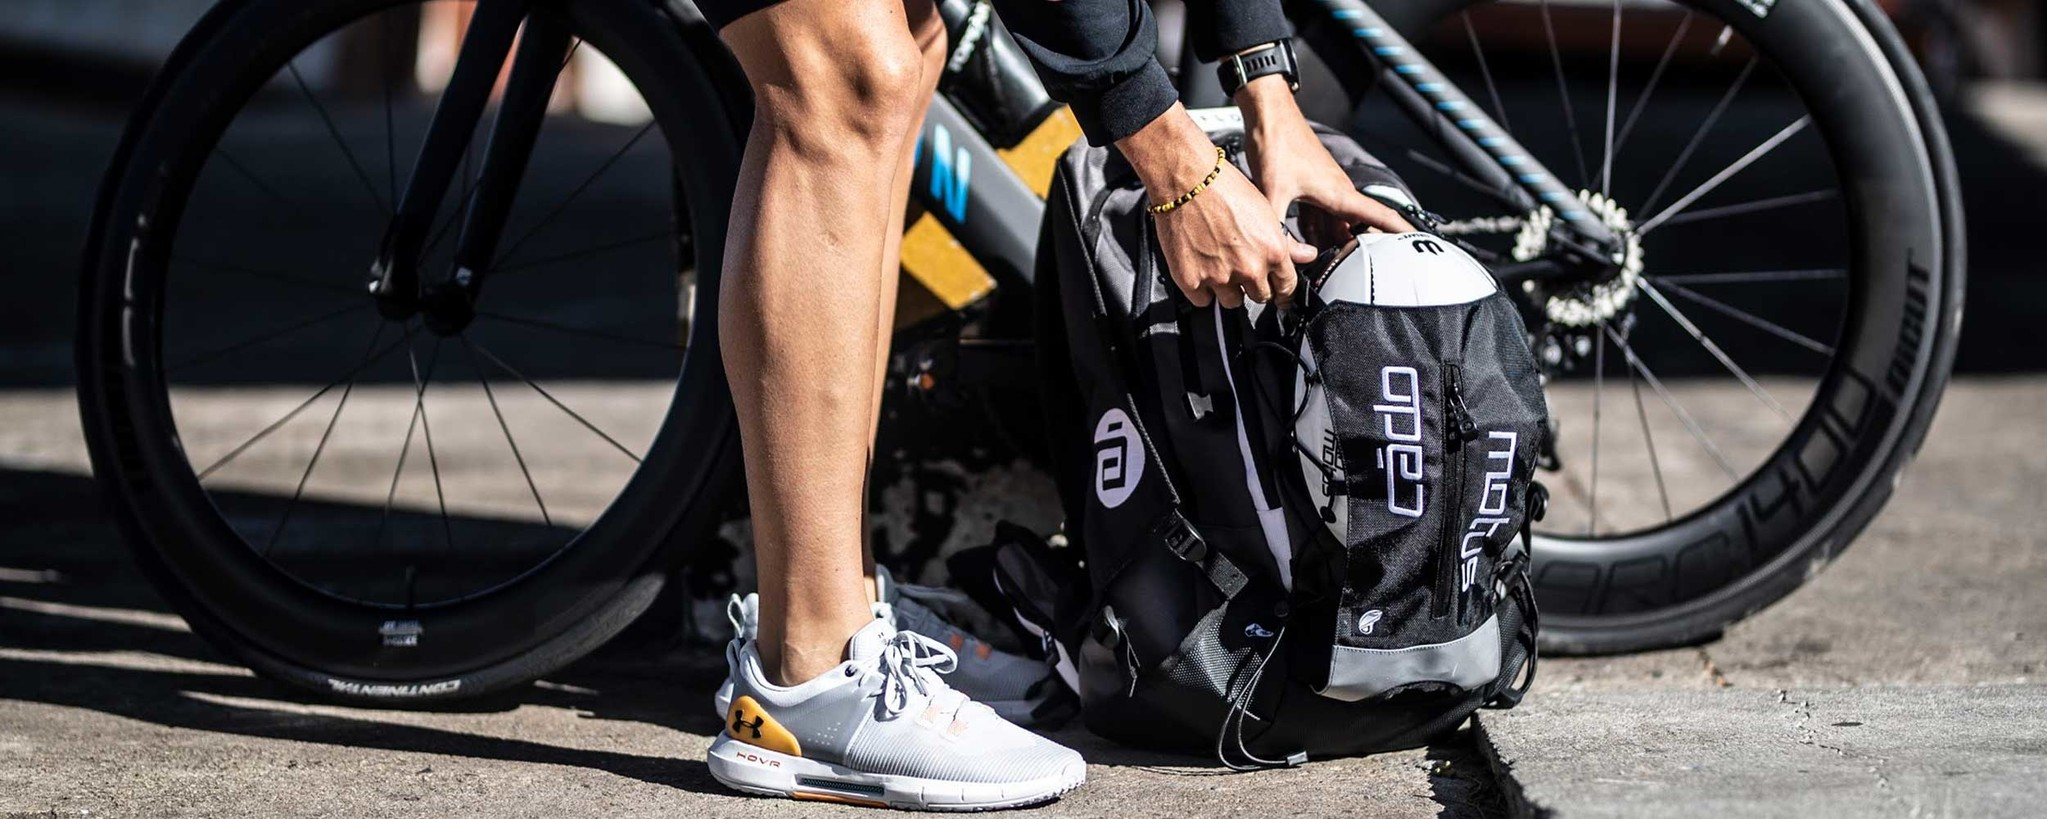 Transition bag for cyclists or triathletes